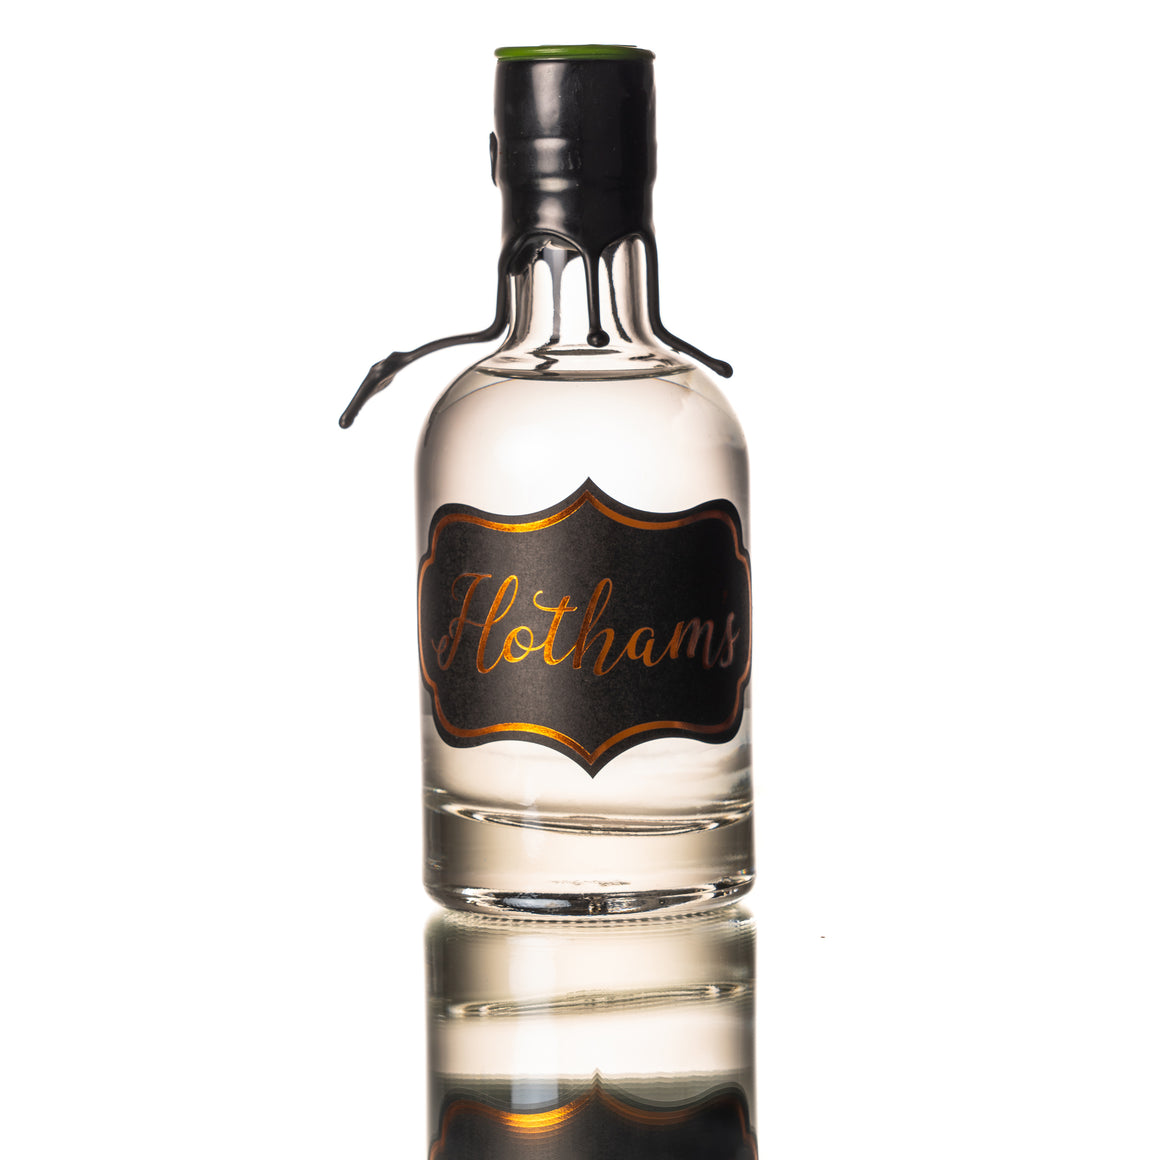 Hotham's Original Gin 20cl Bottle